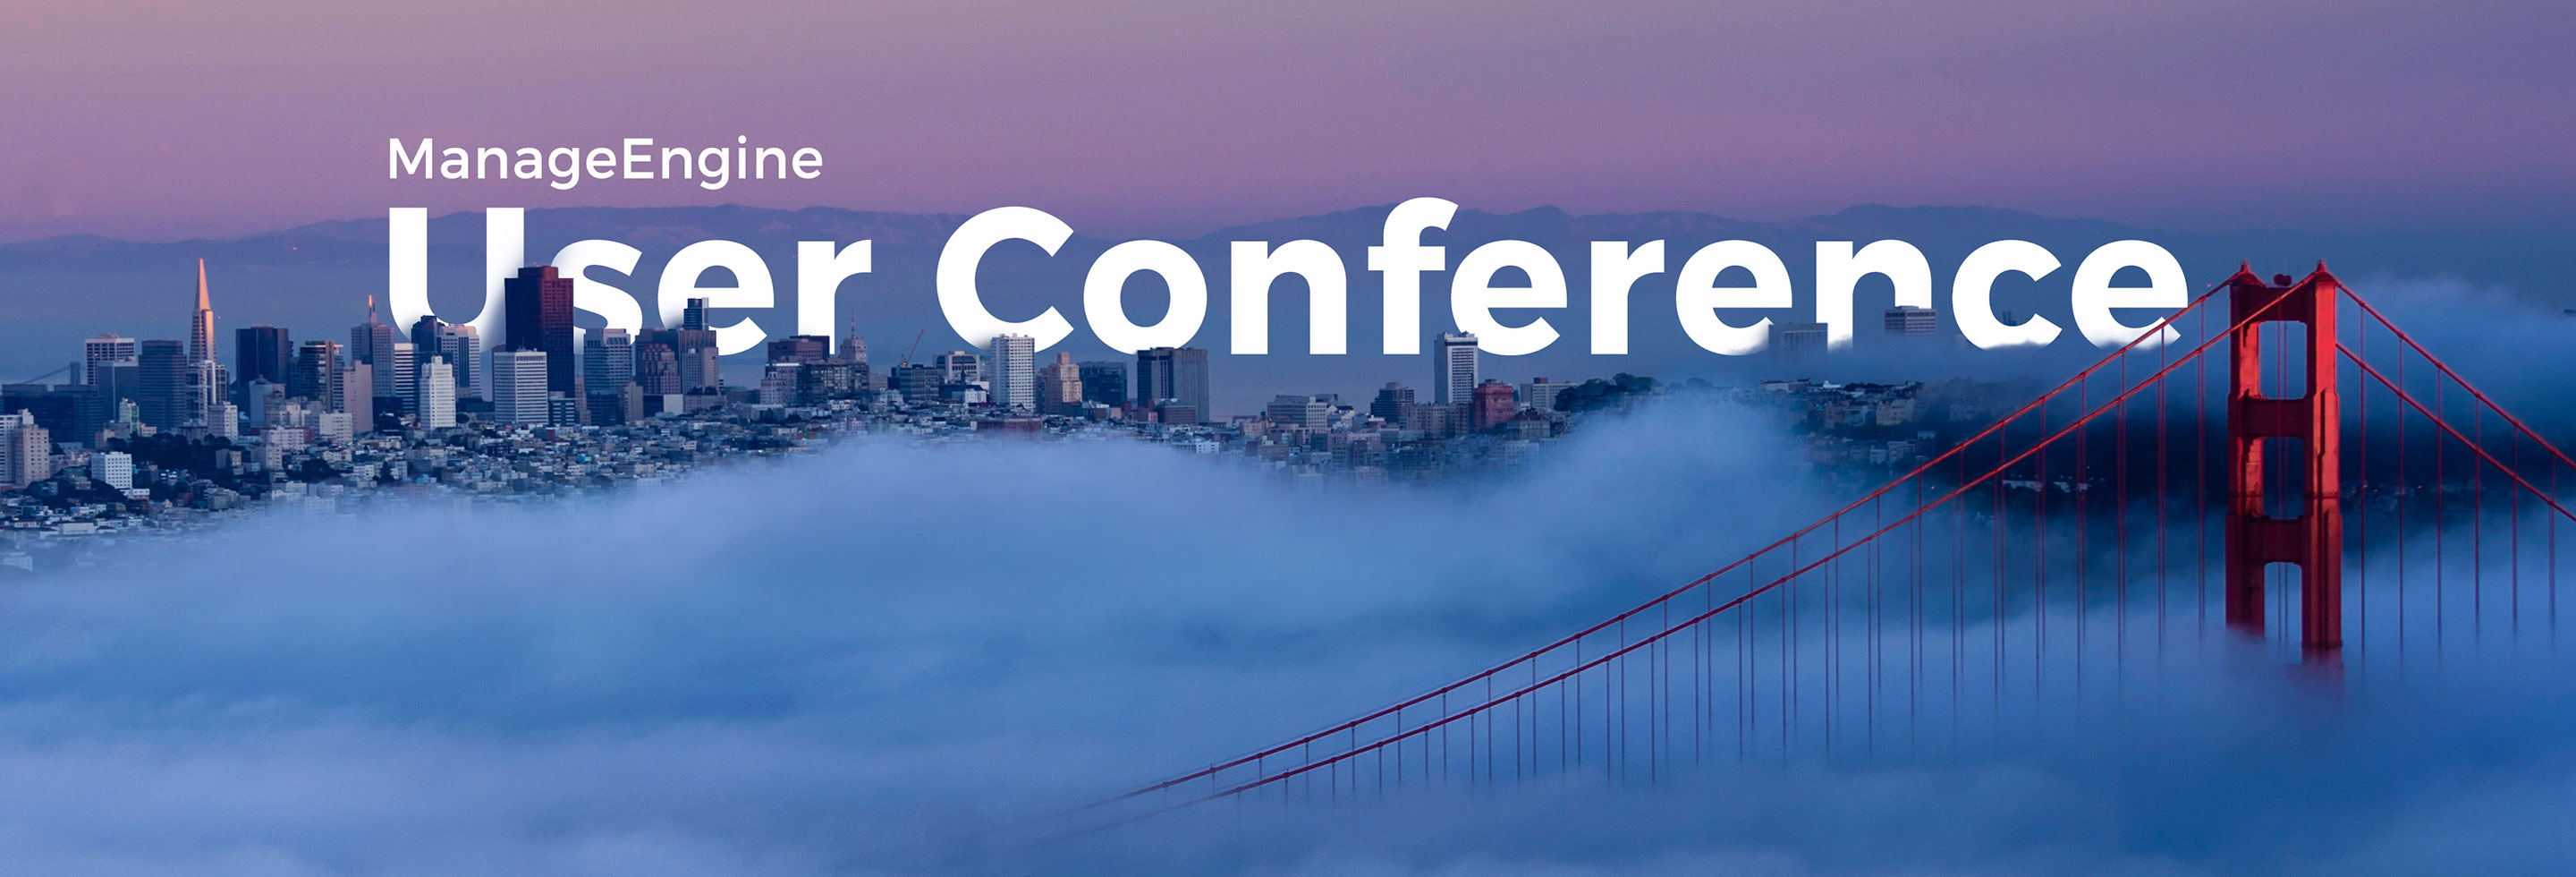 ManageEngine User Conference 2017